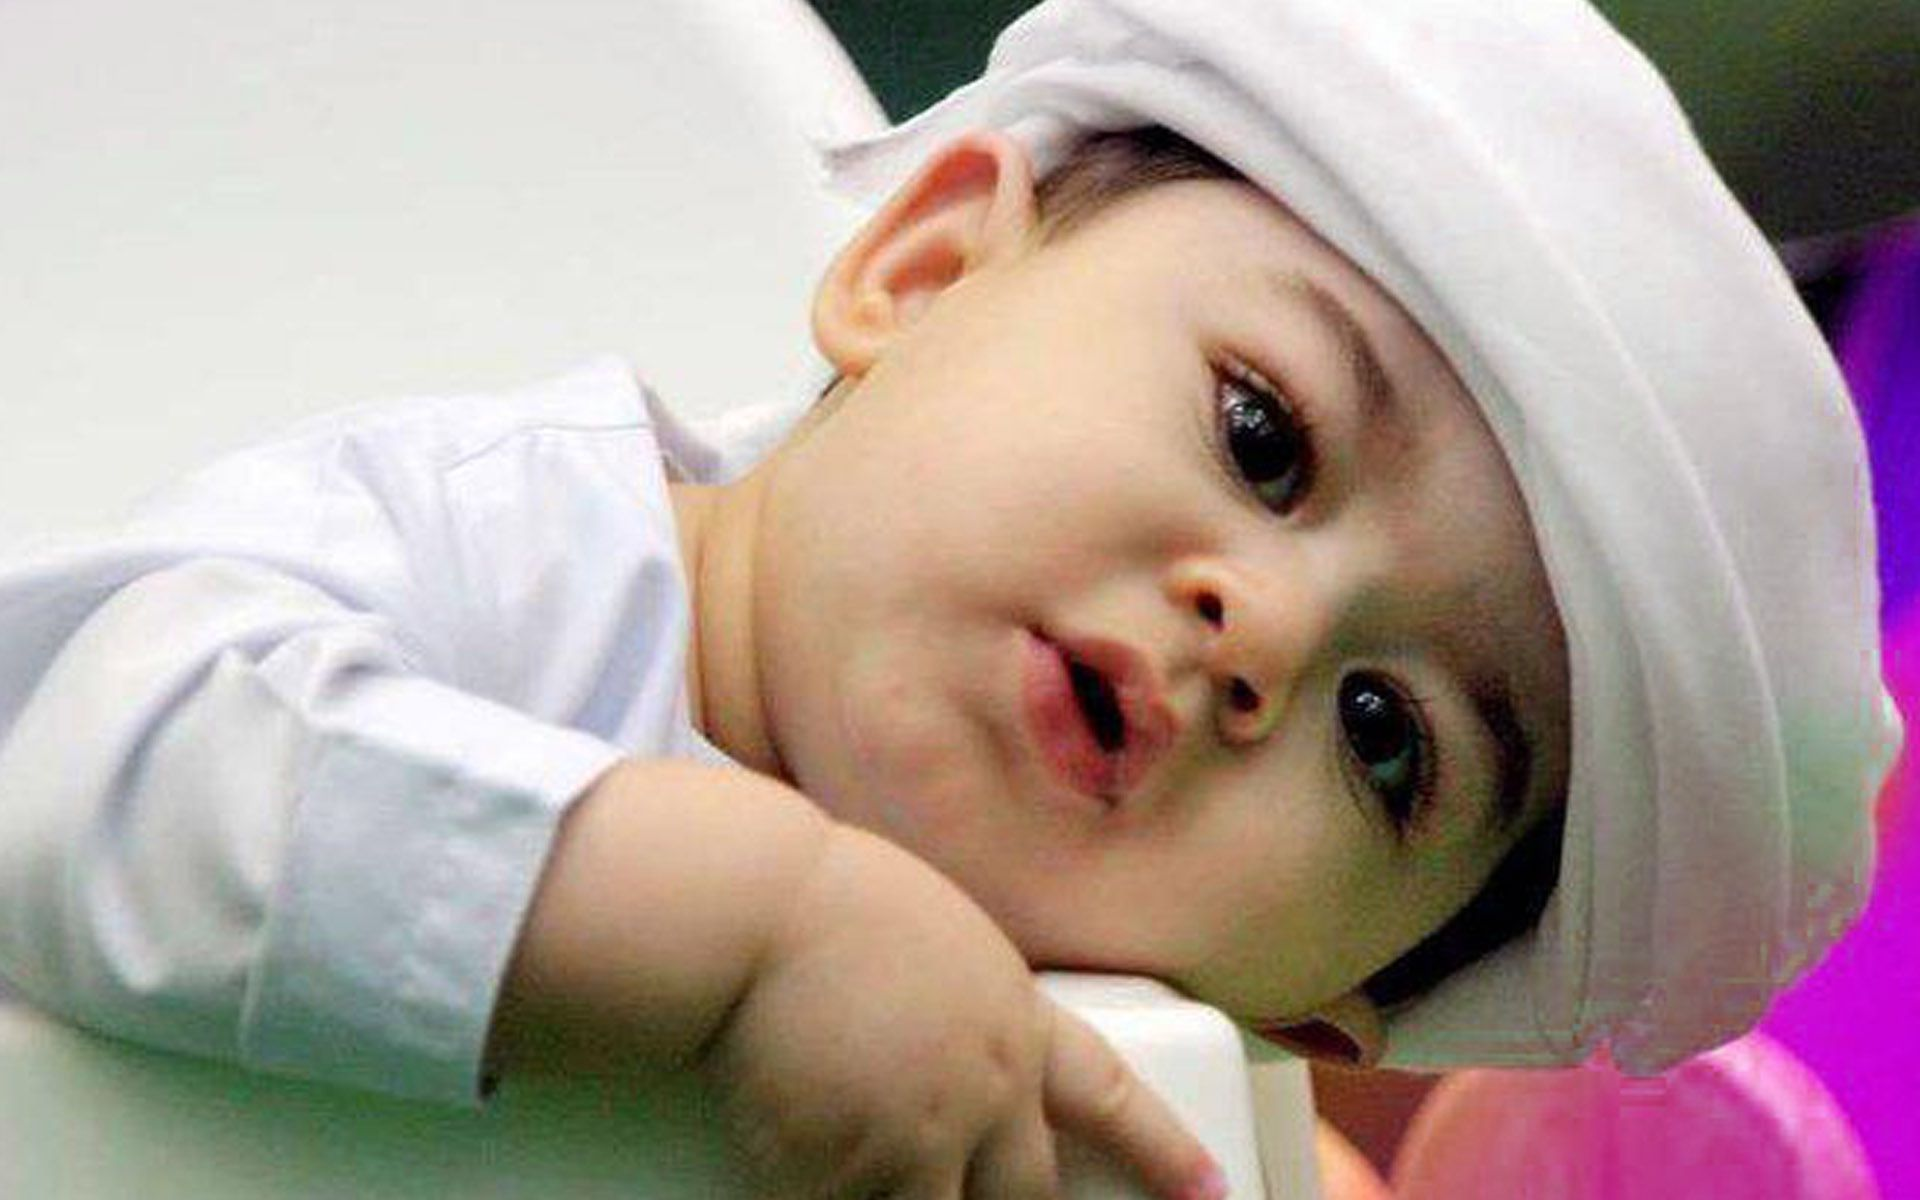 Cute Baby Wallpapers For Desktop Free Download Group 1366 768 Cute Baby Pictures Wallpapers 41 Wallpapers Adorable Wallpapers Muslim Baby Boy Names Cute Baby Wallpaper Muslim Baby Names